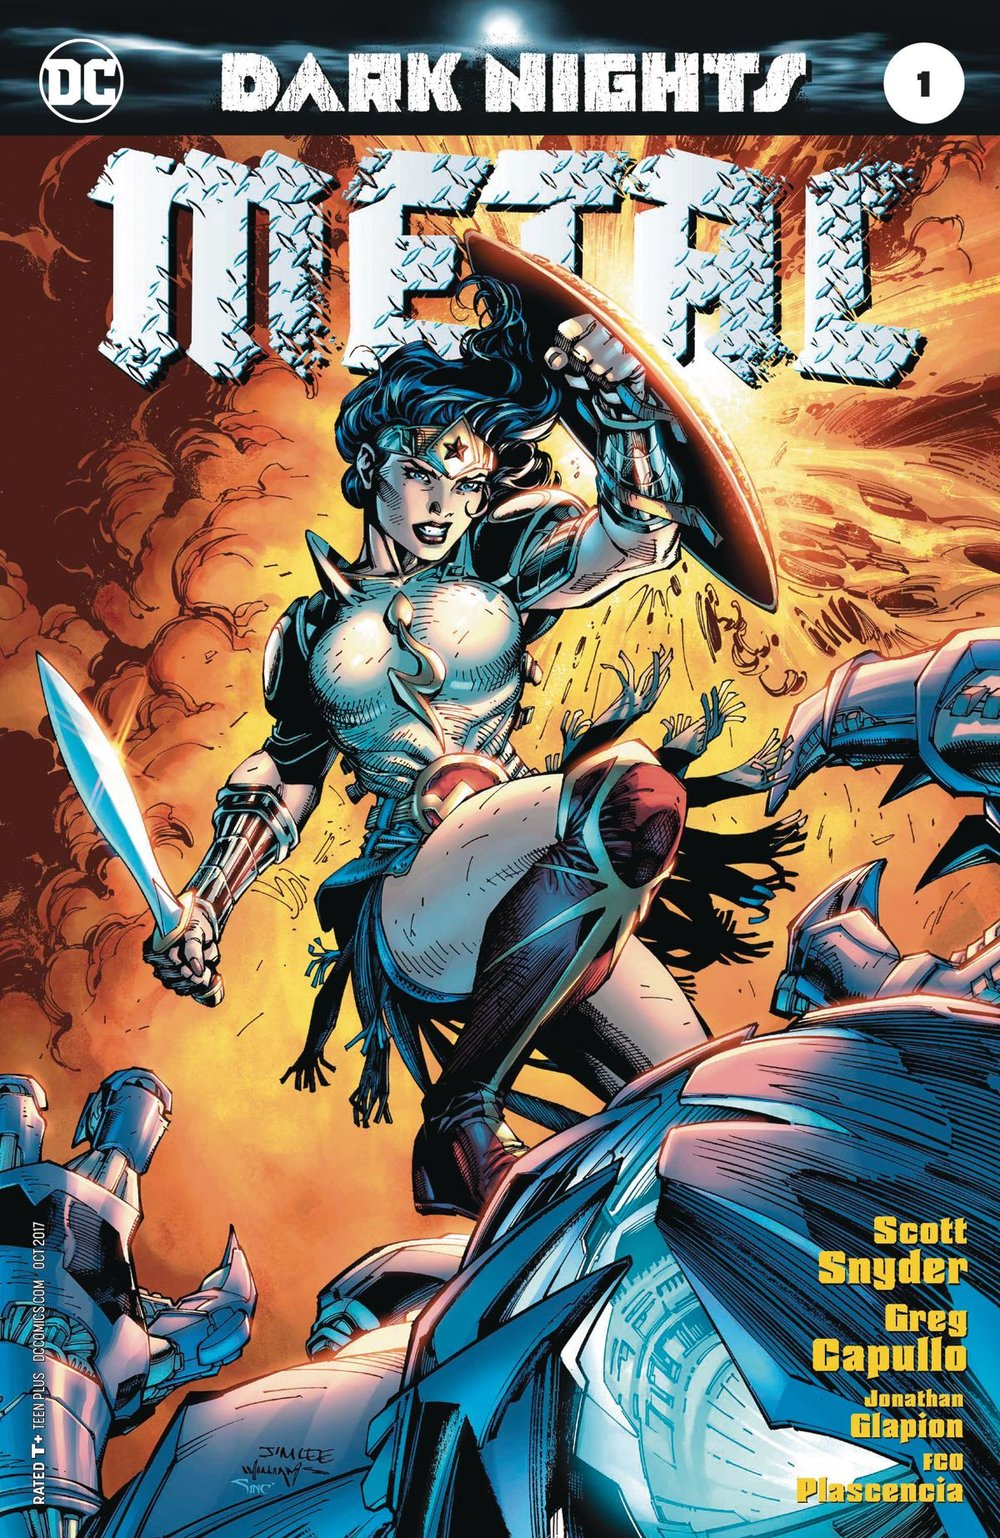 Episode 4 Variant of the Week! - (DC) Dark Nights: METAL #1 (Lee Variant)Cover by Jim LeeWritten by Scott SnyderIllustrated by Greg Capullo and Danny MikiDid the Content Match the Drapes? - No